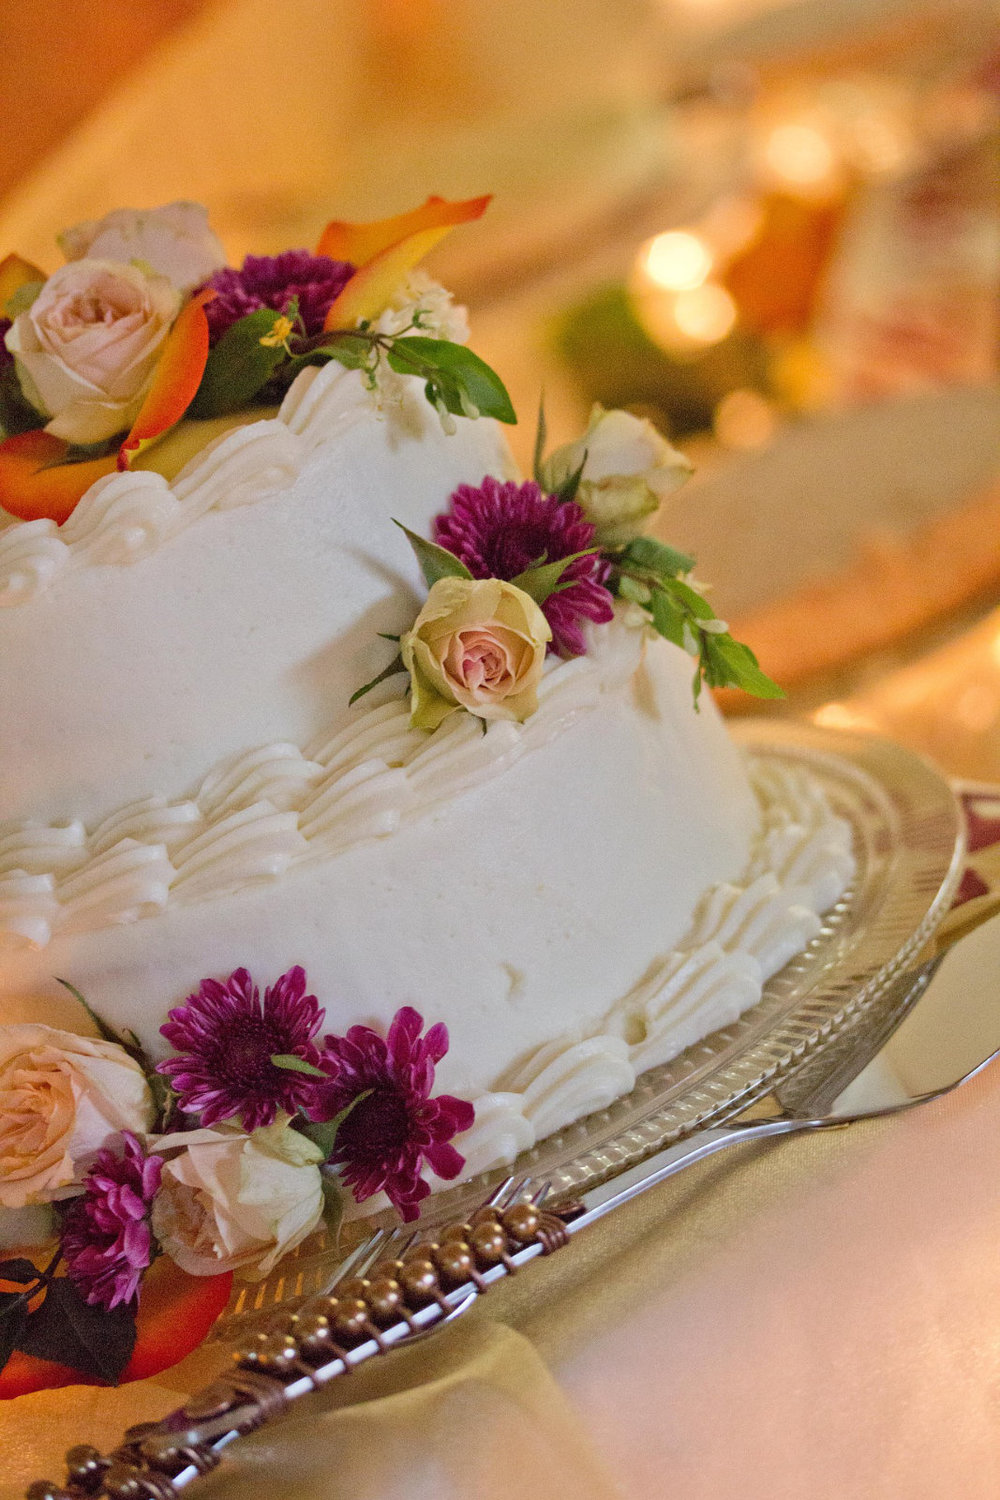 fresh-flowers-wedding-cake.jpg